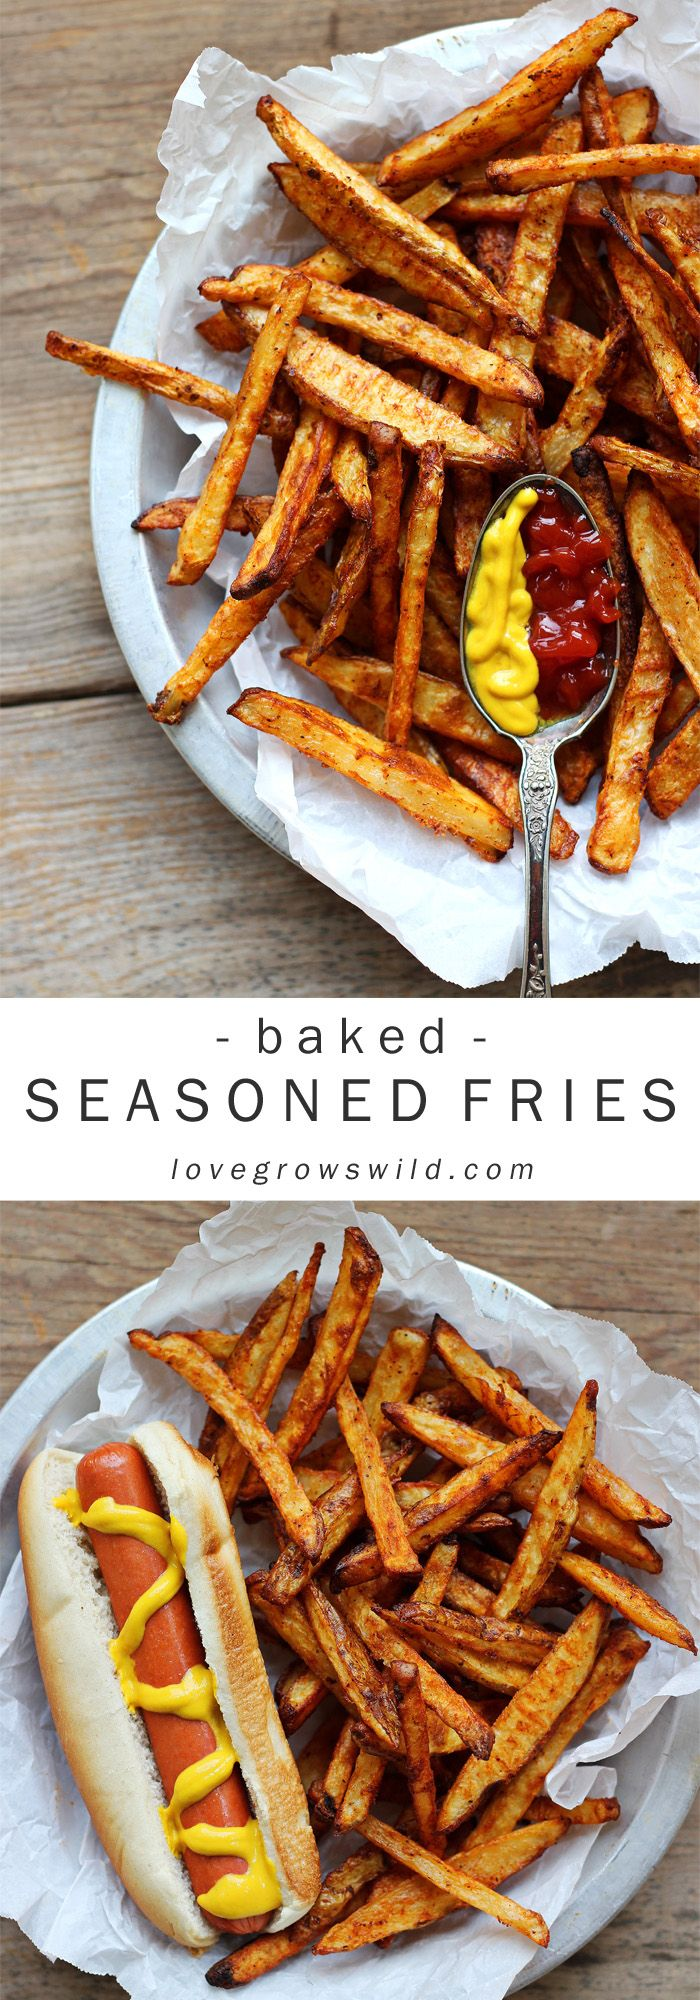 Homemade seasoned fries - baked, not fried! Get the secret to perfectly crisp and delicious fries at LoveGrowsWild.com